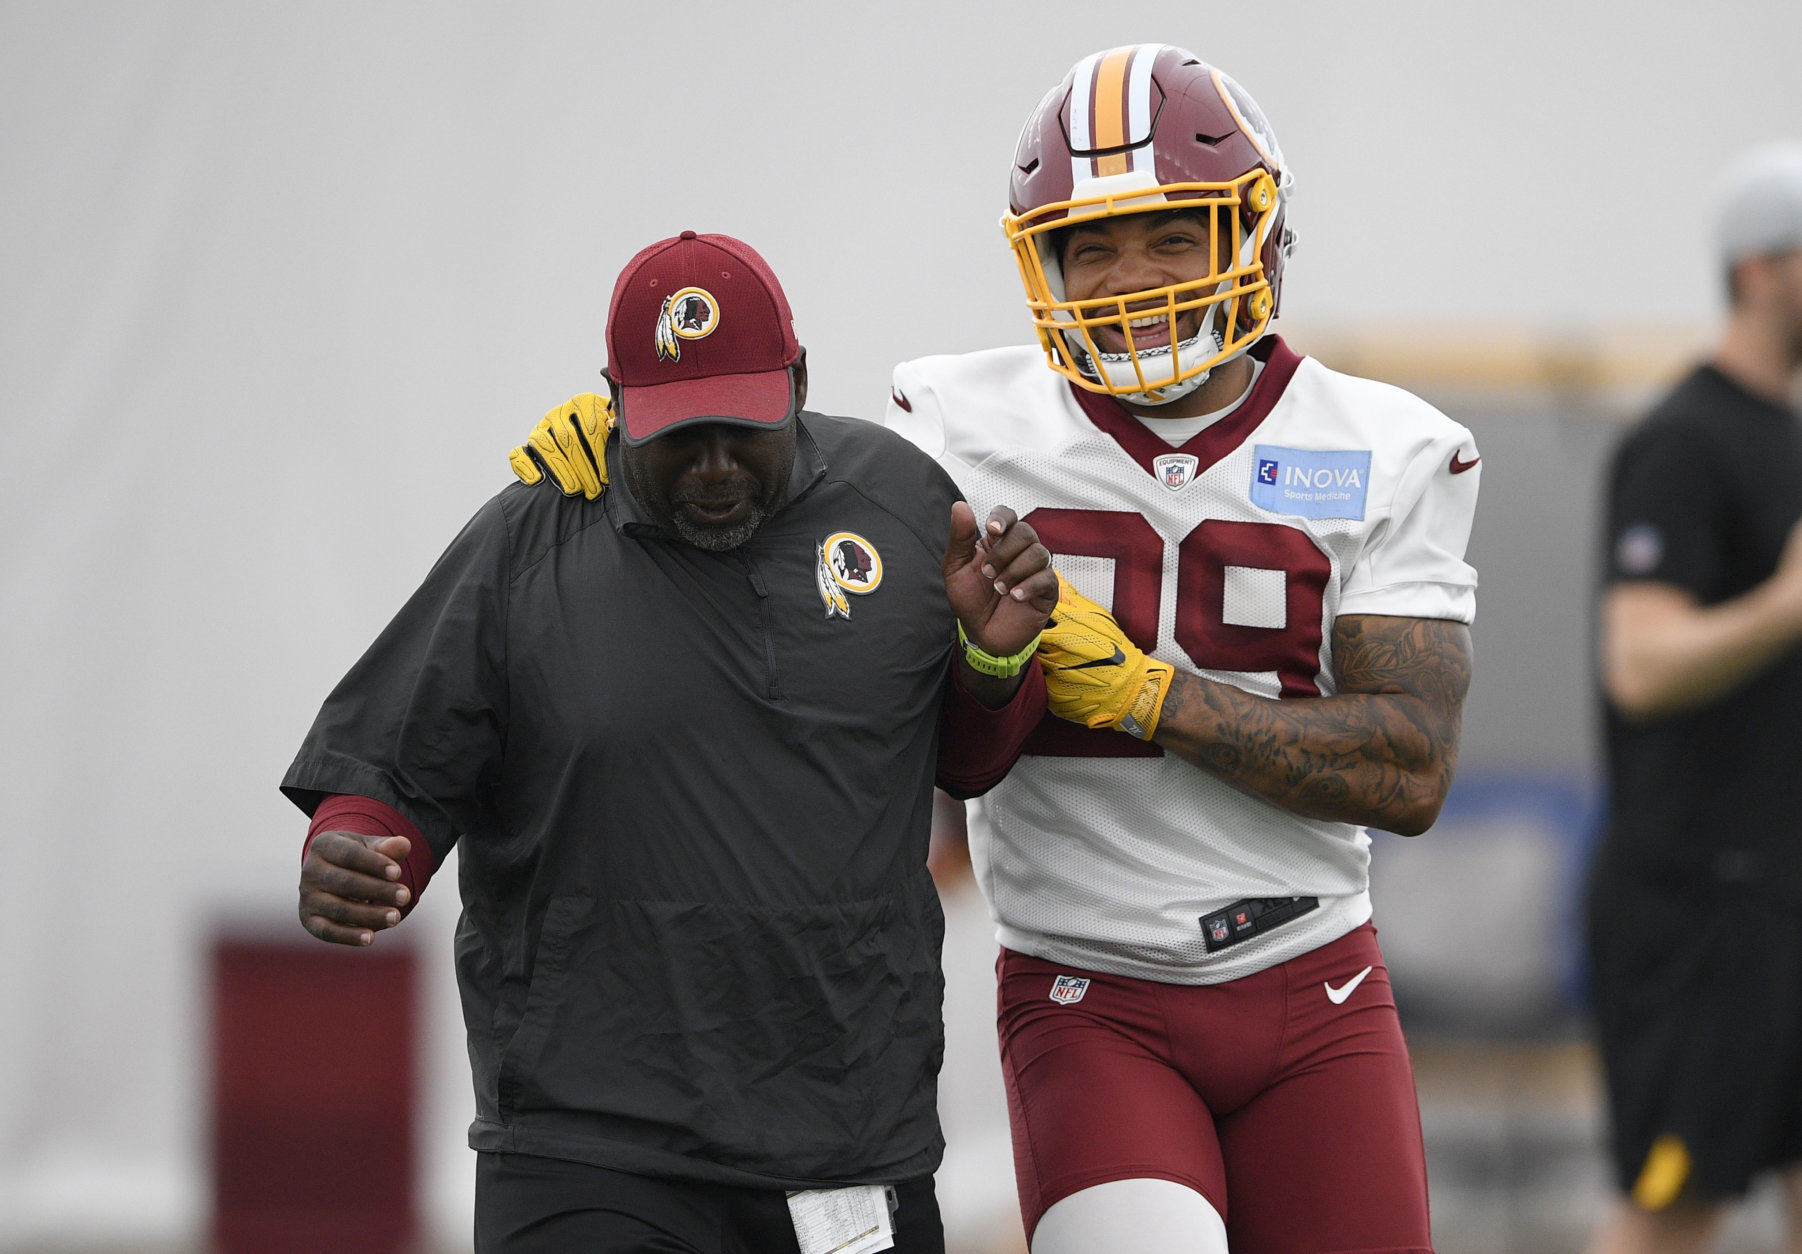 Washington Redskins running back Derrius Guice (29) jokes around with a coach during an NFL football team practice, Wednesday, June 13, 2018, in Ashburn, Va. (AP Photo/Nick Wass)